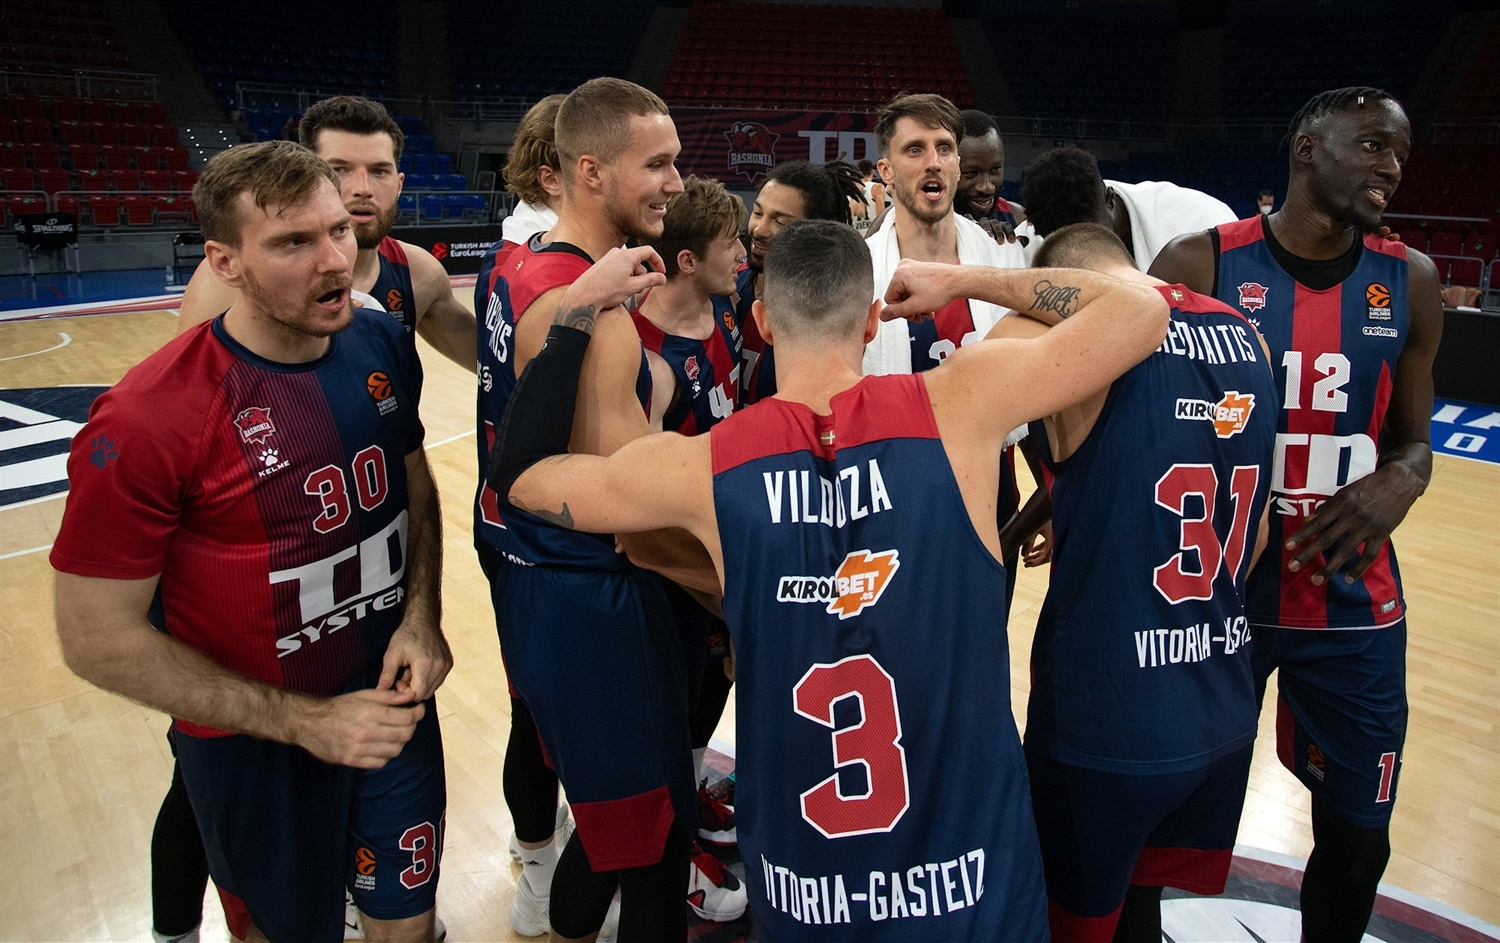 Players TD Systems Baskonia Vitoria-Gasteiz - EB20